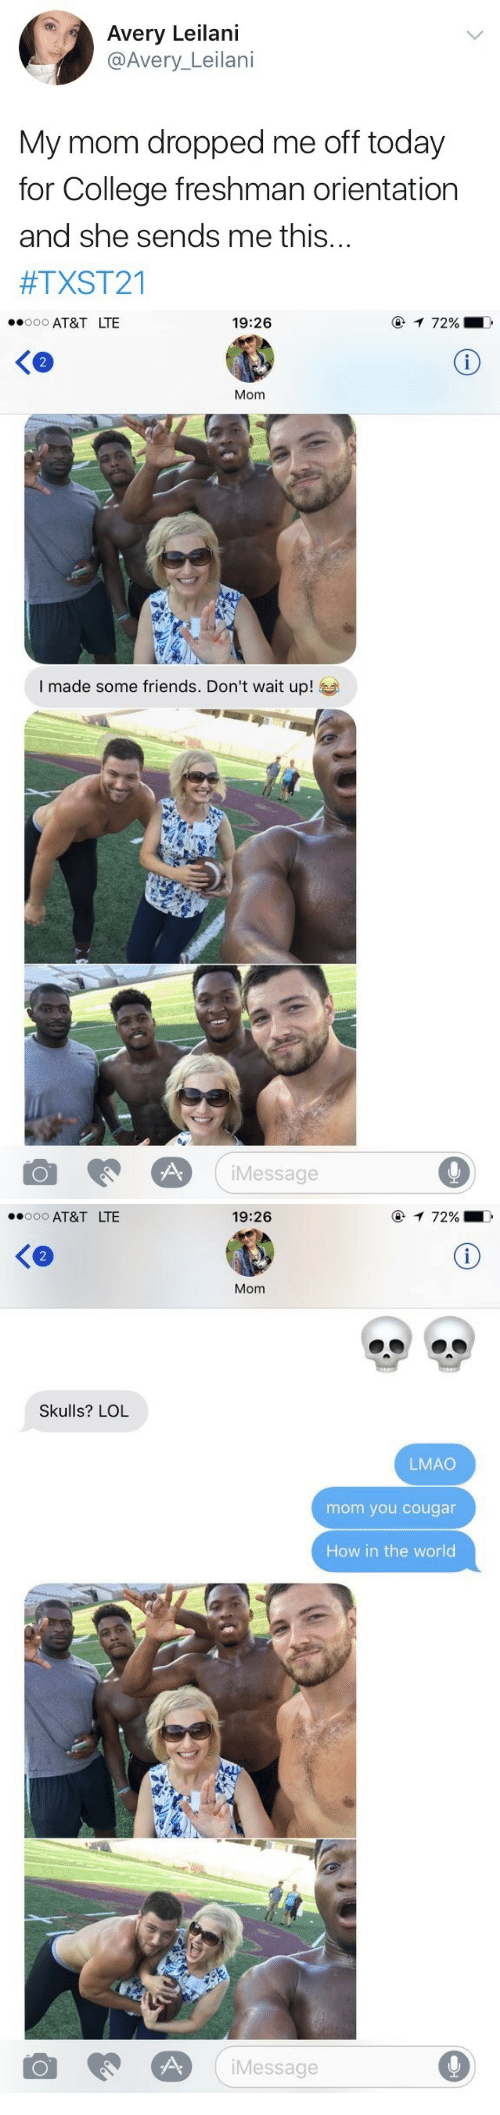 avery: Avery Leilani  @Avery_Leilani  My mom dropped me off today  for College freshman orientation  and she sends me this...  #TXST21   AT&T LTE  19:26  2  Mom  I made some friends. Don't wait up!  iMessage  9   AT&T LTE  19:26  Ke  Mom  Skulls? LOL  LMAO  mom you cougar  How in the world  Message  9